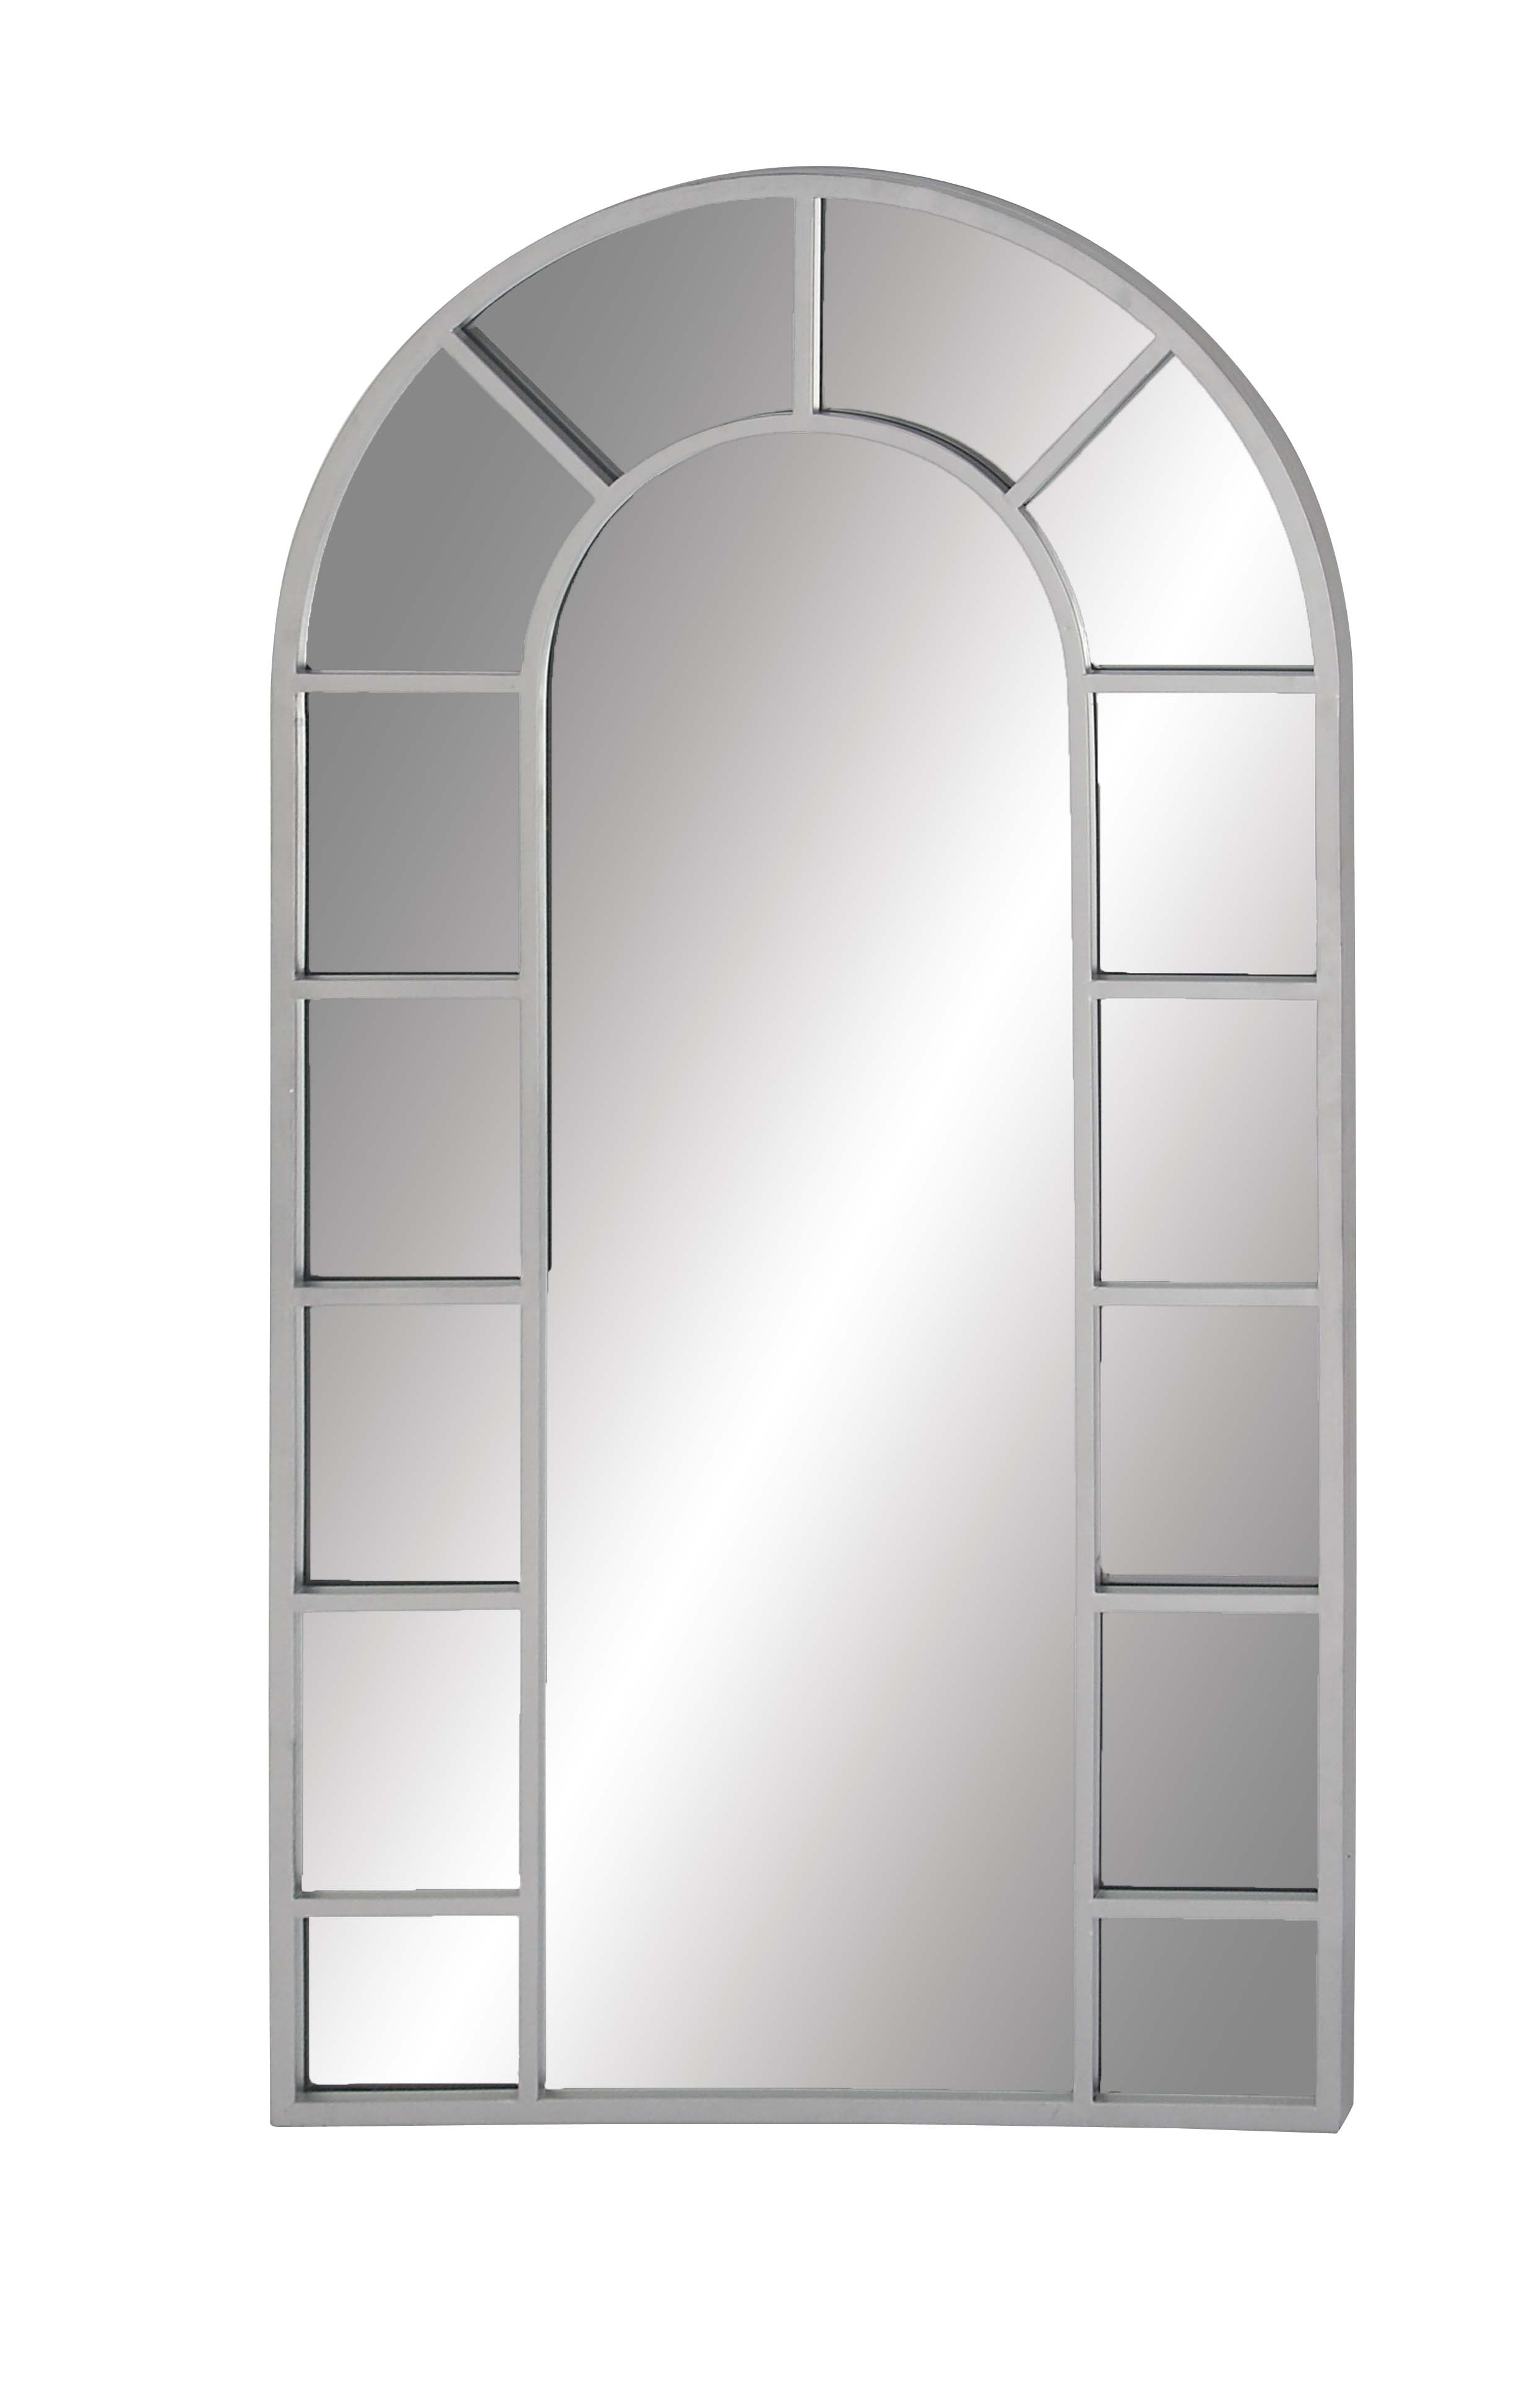 Decmode Contemporary Wood And Metal Arched White Wall Mirror, White Inside Arch Vertical Wall Mirrors (Image 10 of 20)